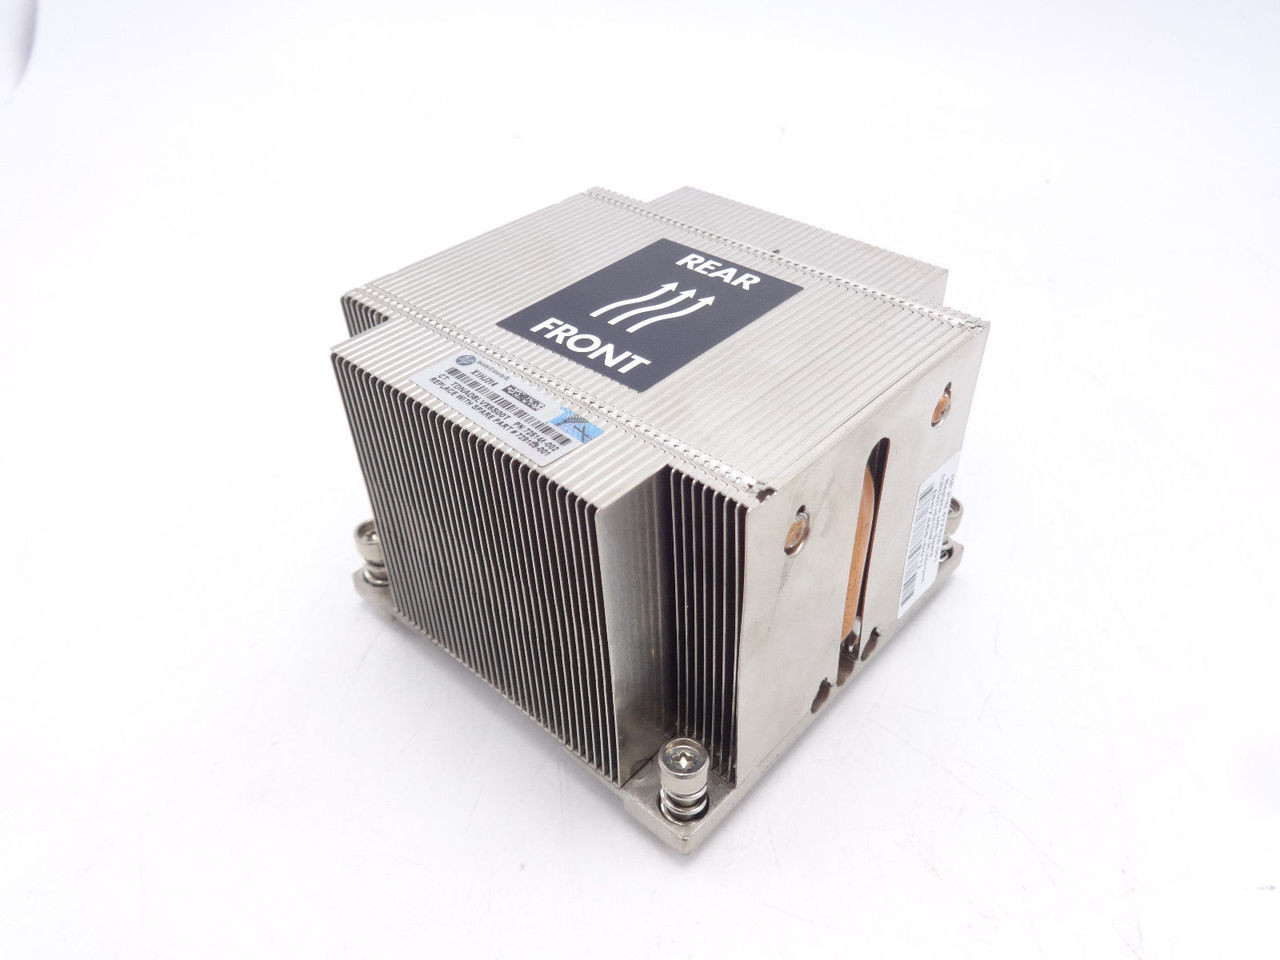 687456-001 HP ML350E G8 Heatsink